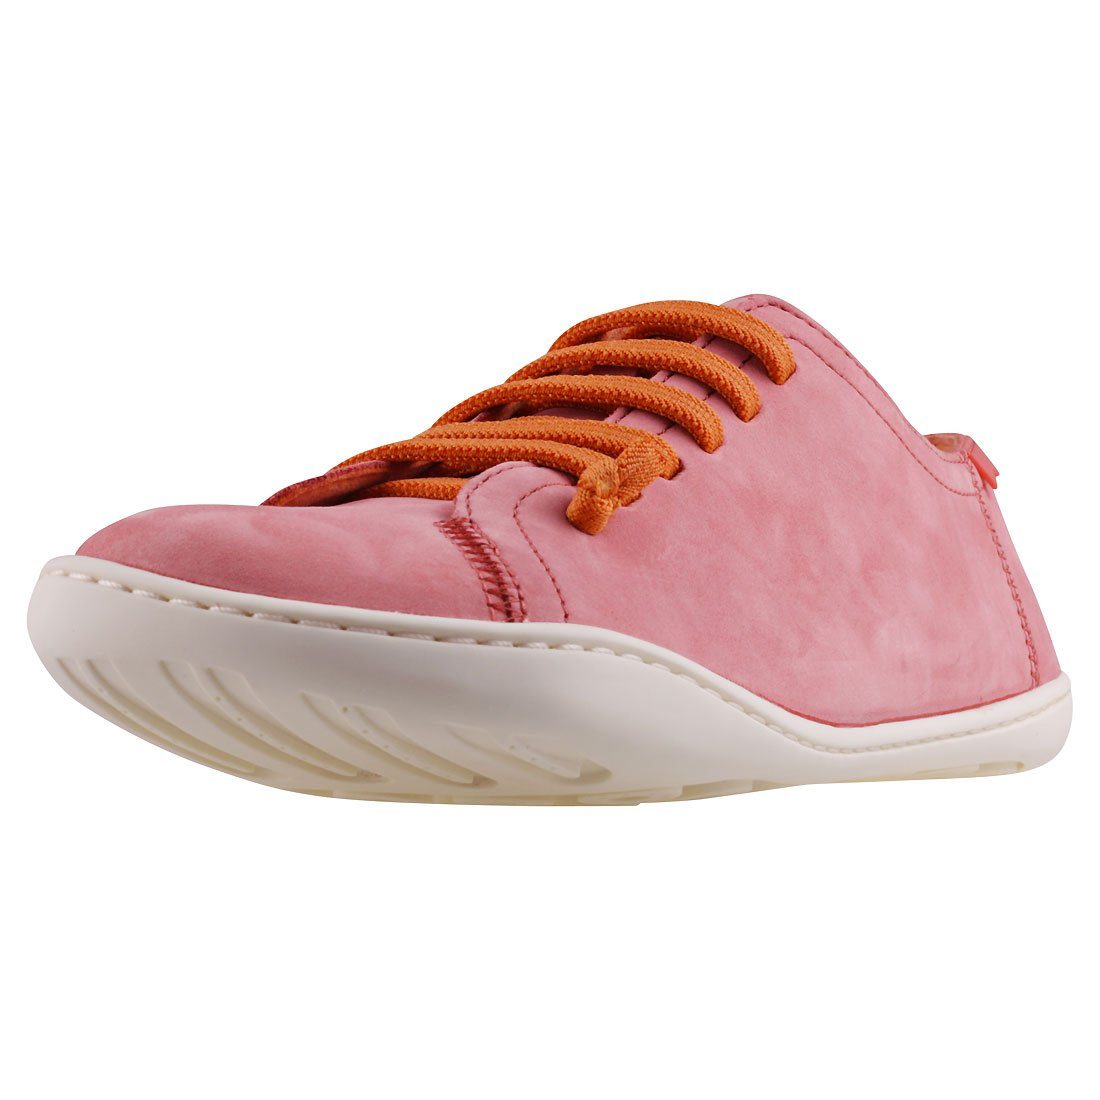 Camper Women's Peu Cami Basket Fashion Sneaker B0743JDYPJ 40 M EU|Medium Pink